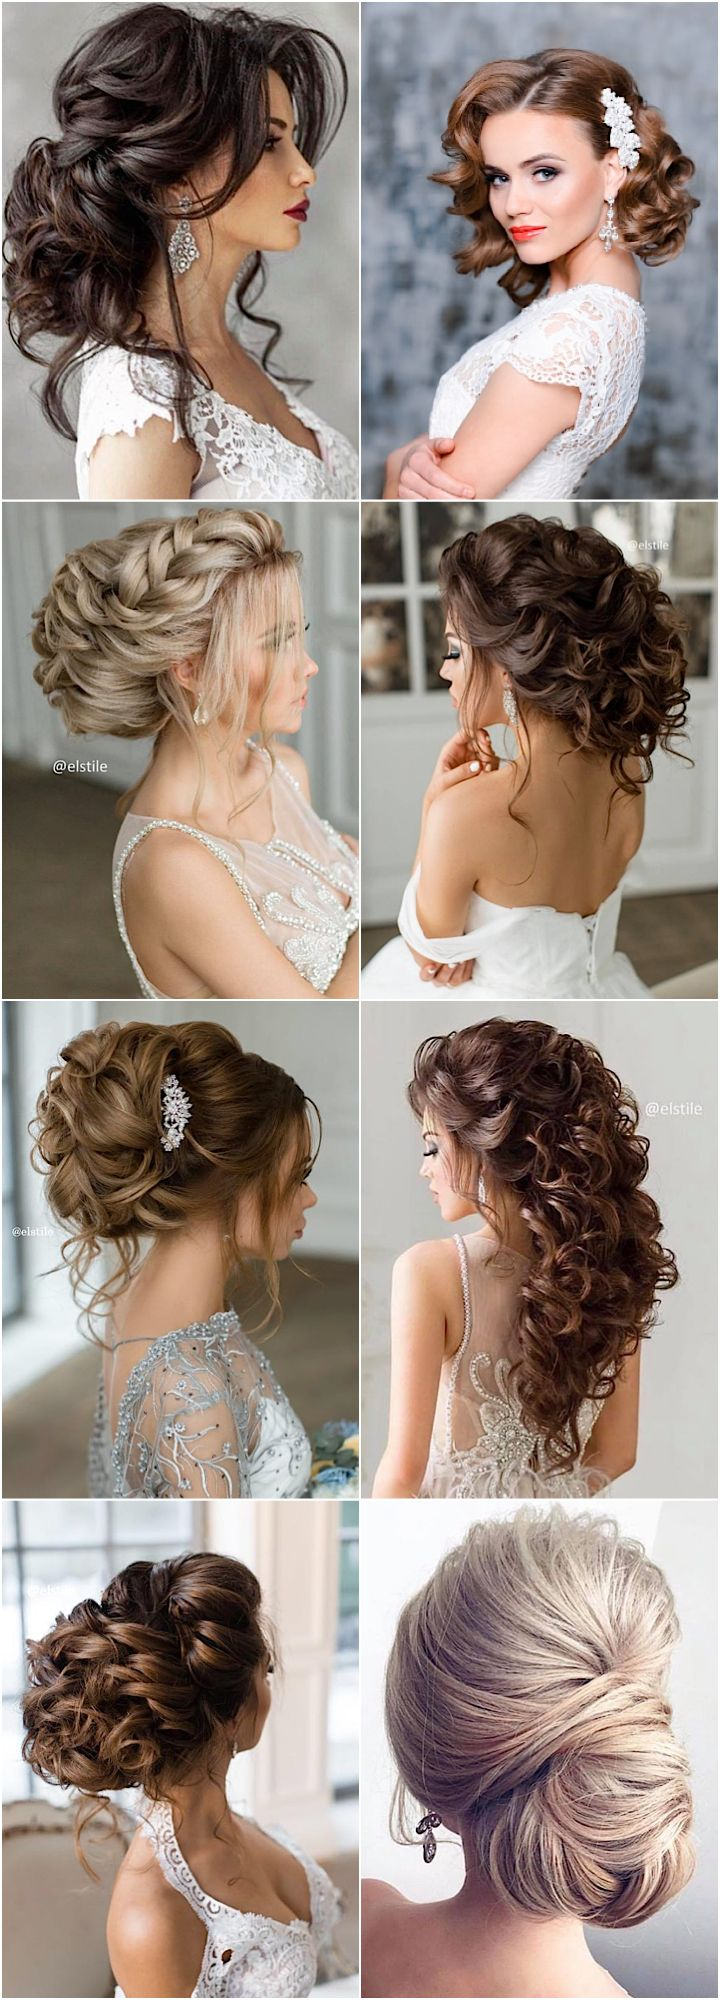 how to style hair for wedding wedding hairstyle inspiration elstile hair style 2953